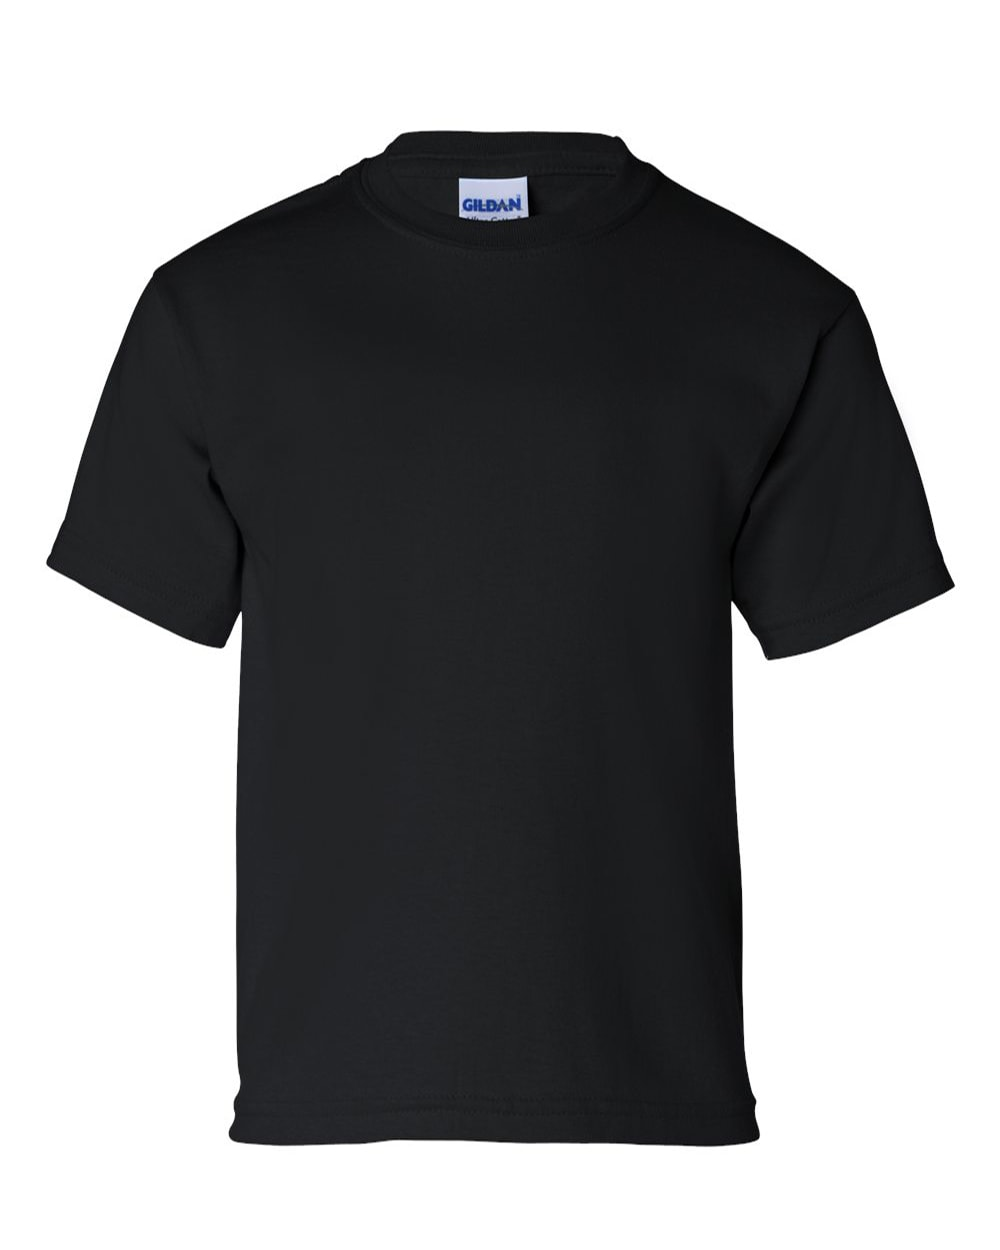 Picture of Gildan Youth T-Shirt 100% Cotton